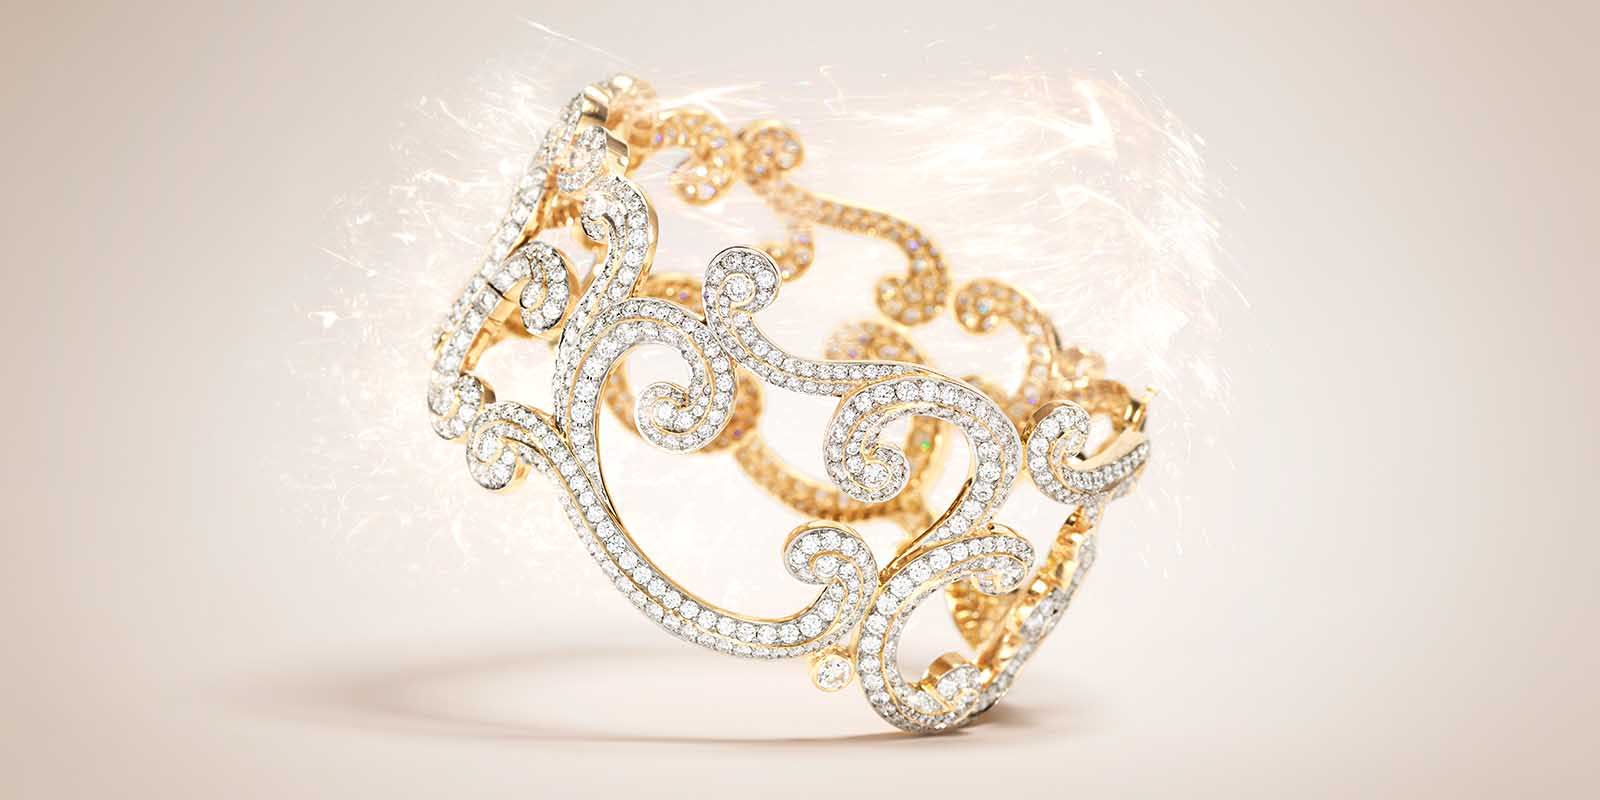 Lace diamond rose gold bangle from the Rococo Collection